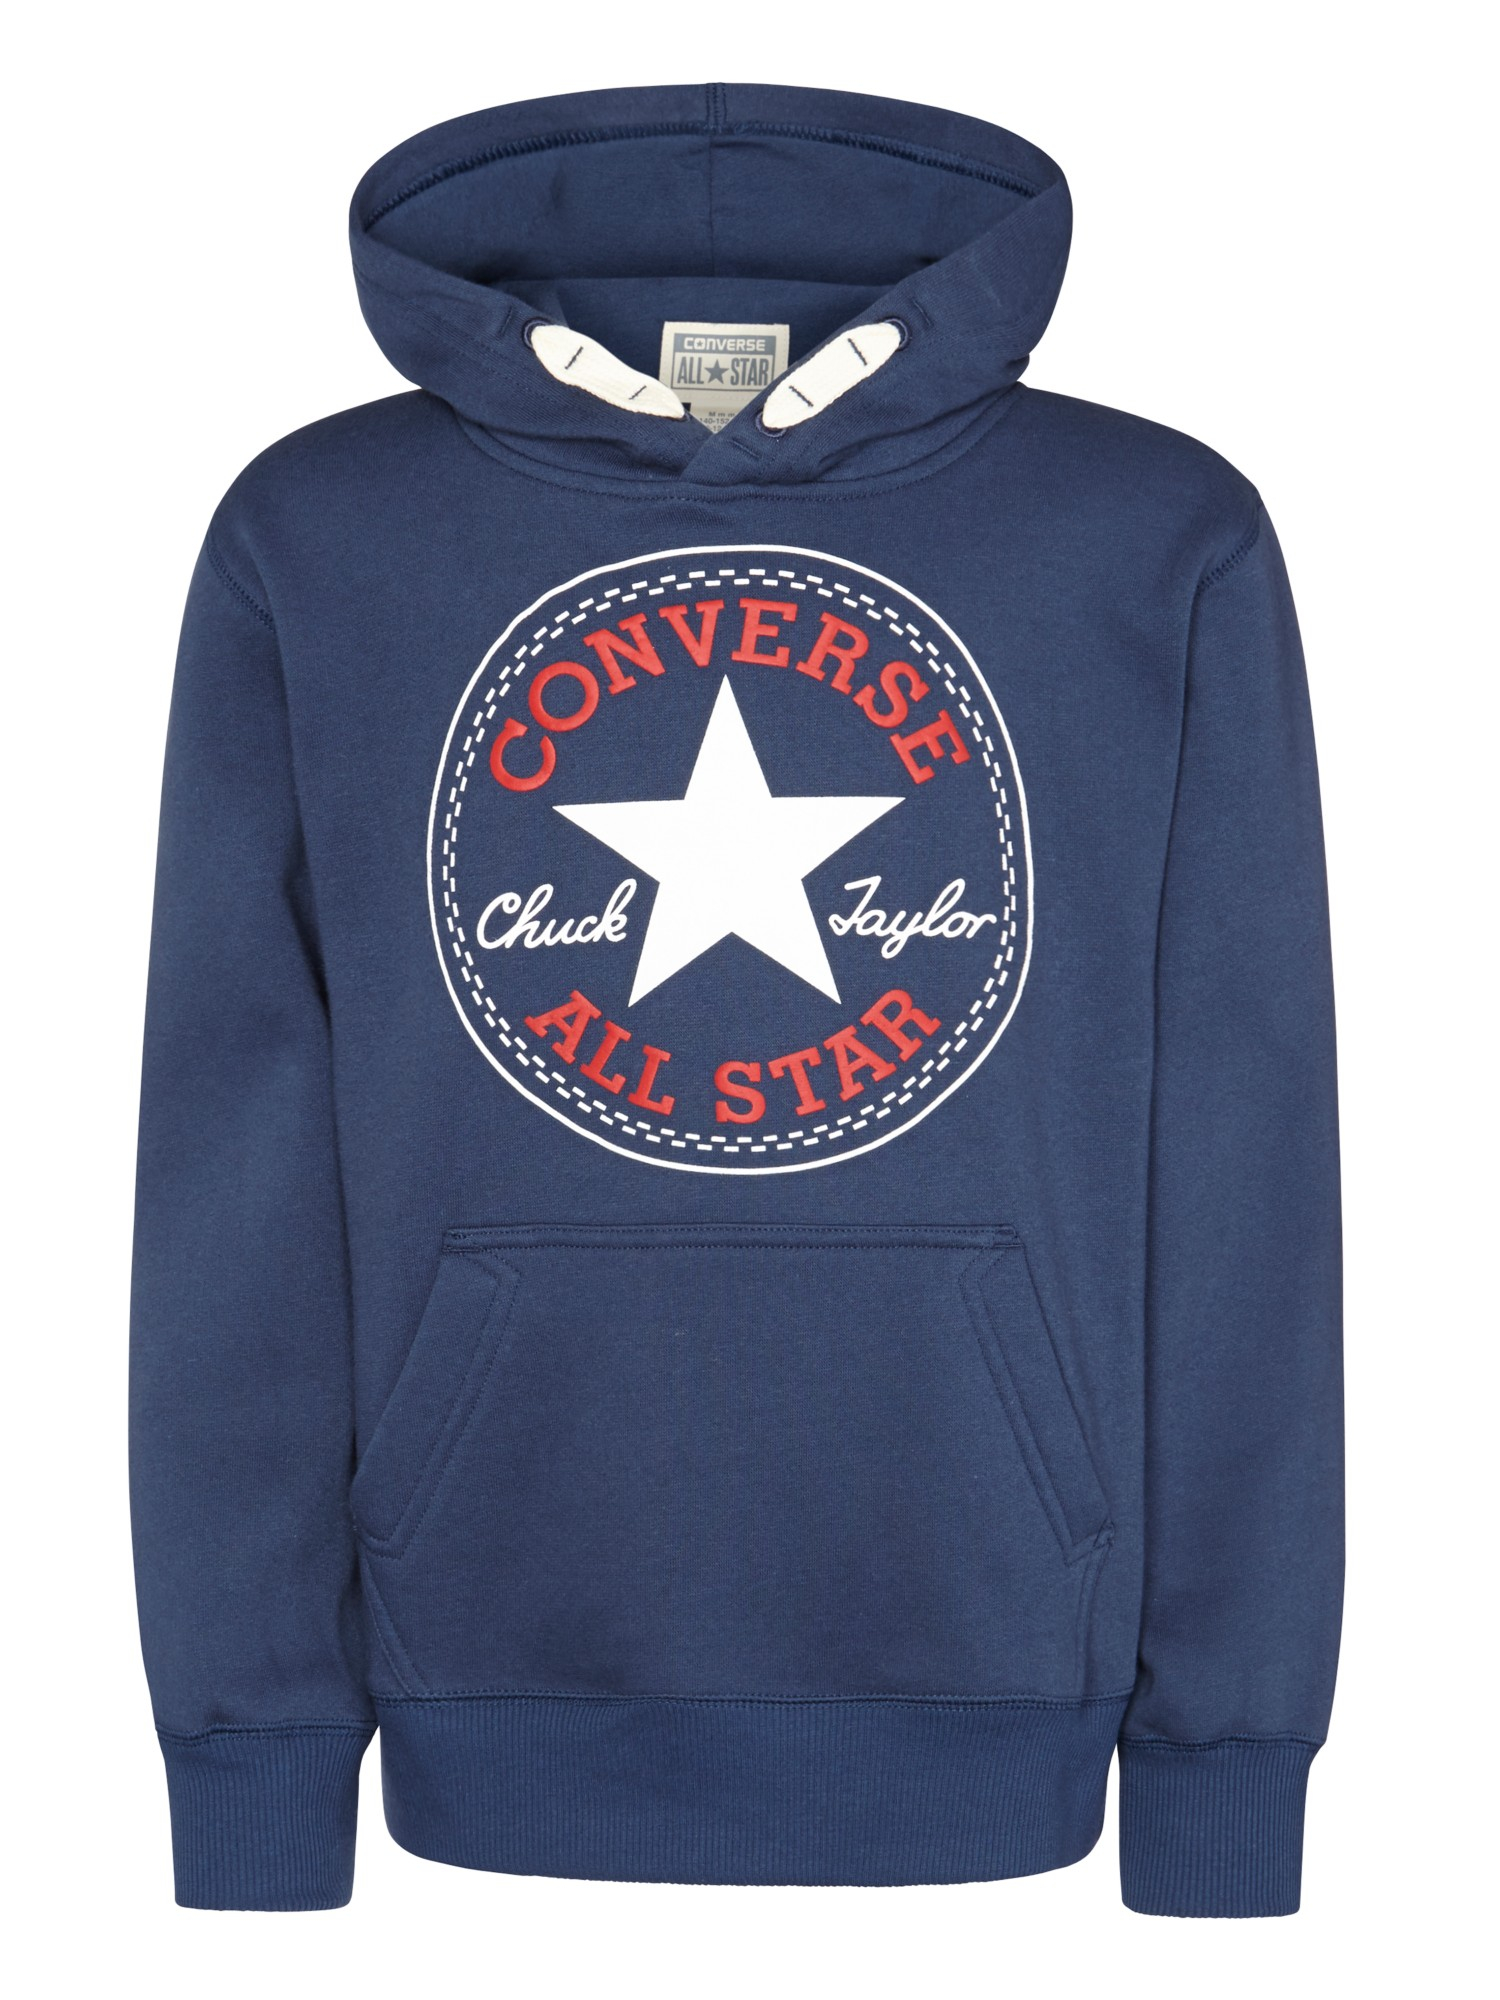 Converse Boys  Pullover Hoodie in Blue - Lyst 957c5ed878